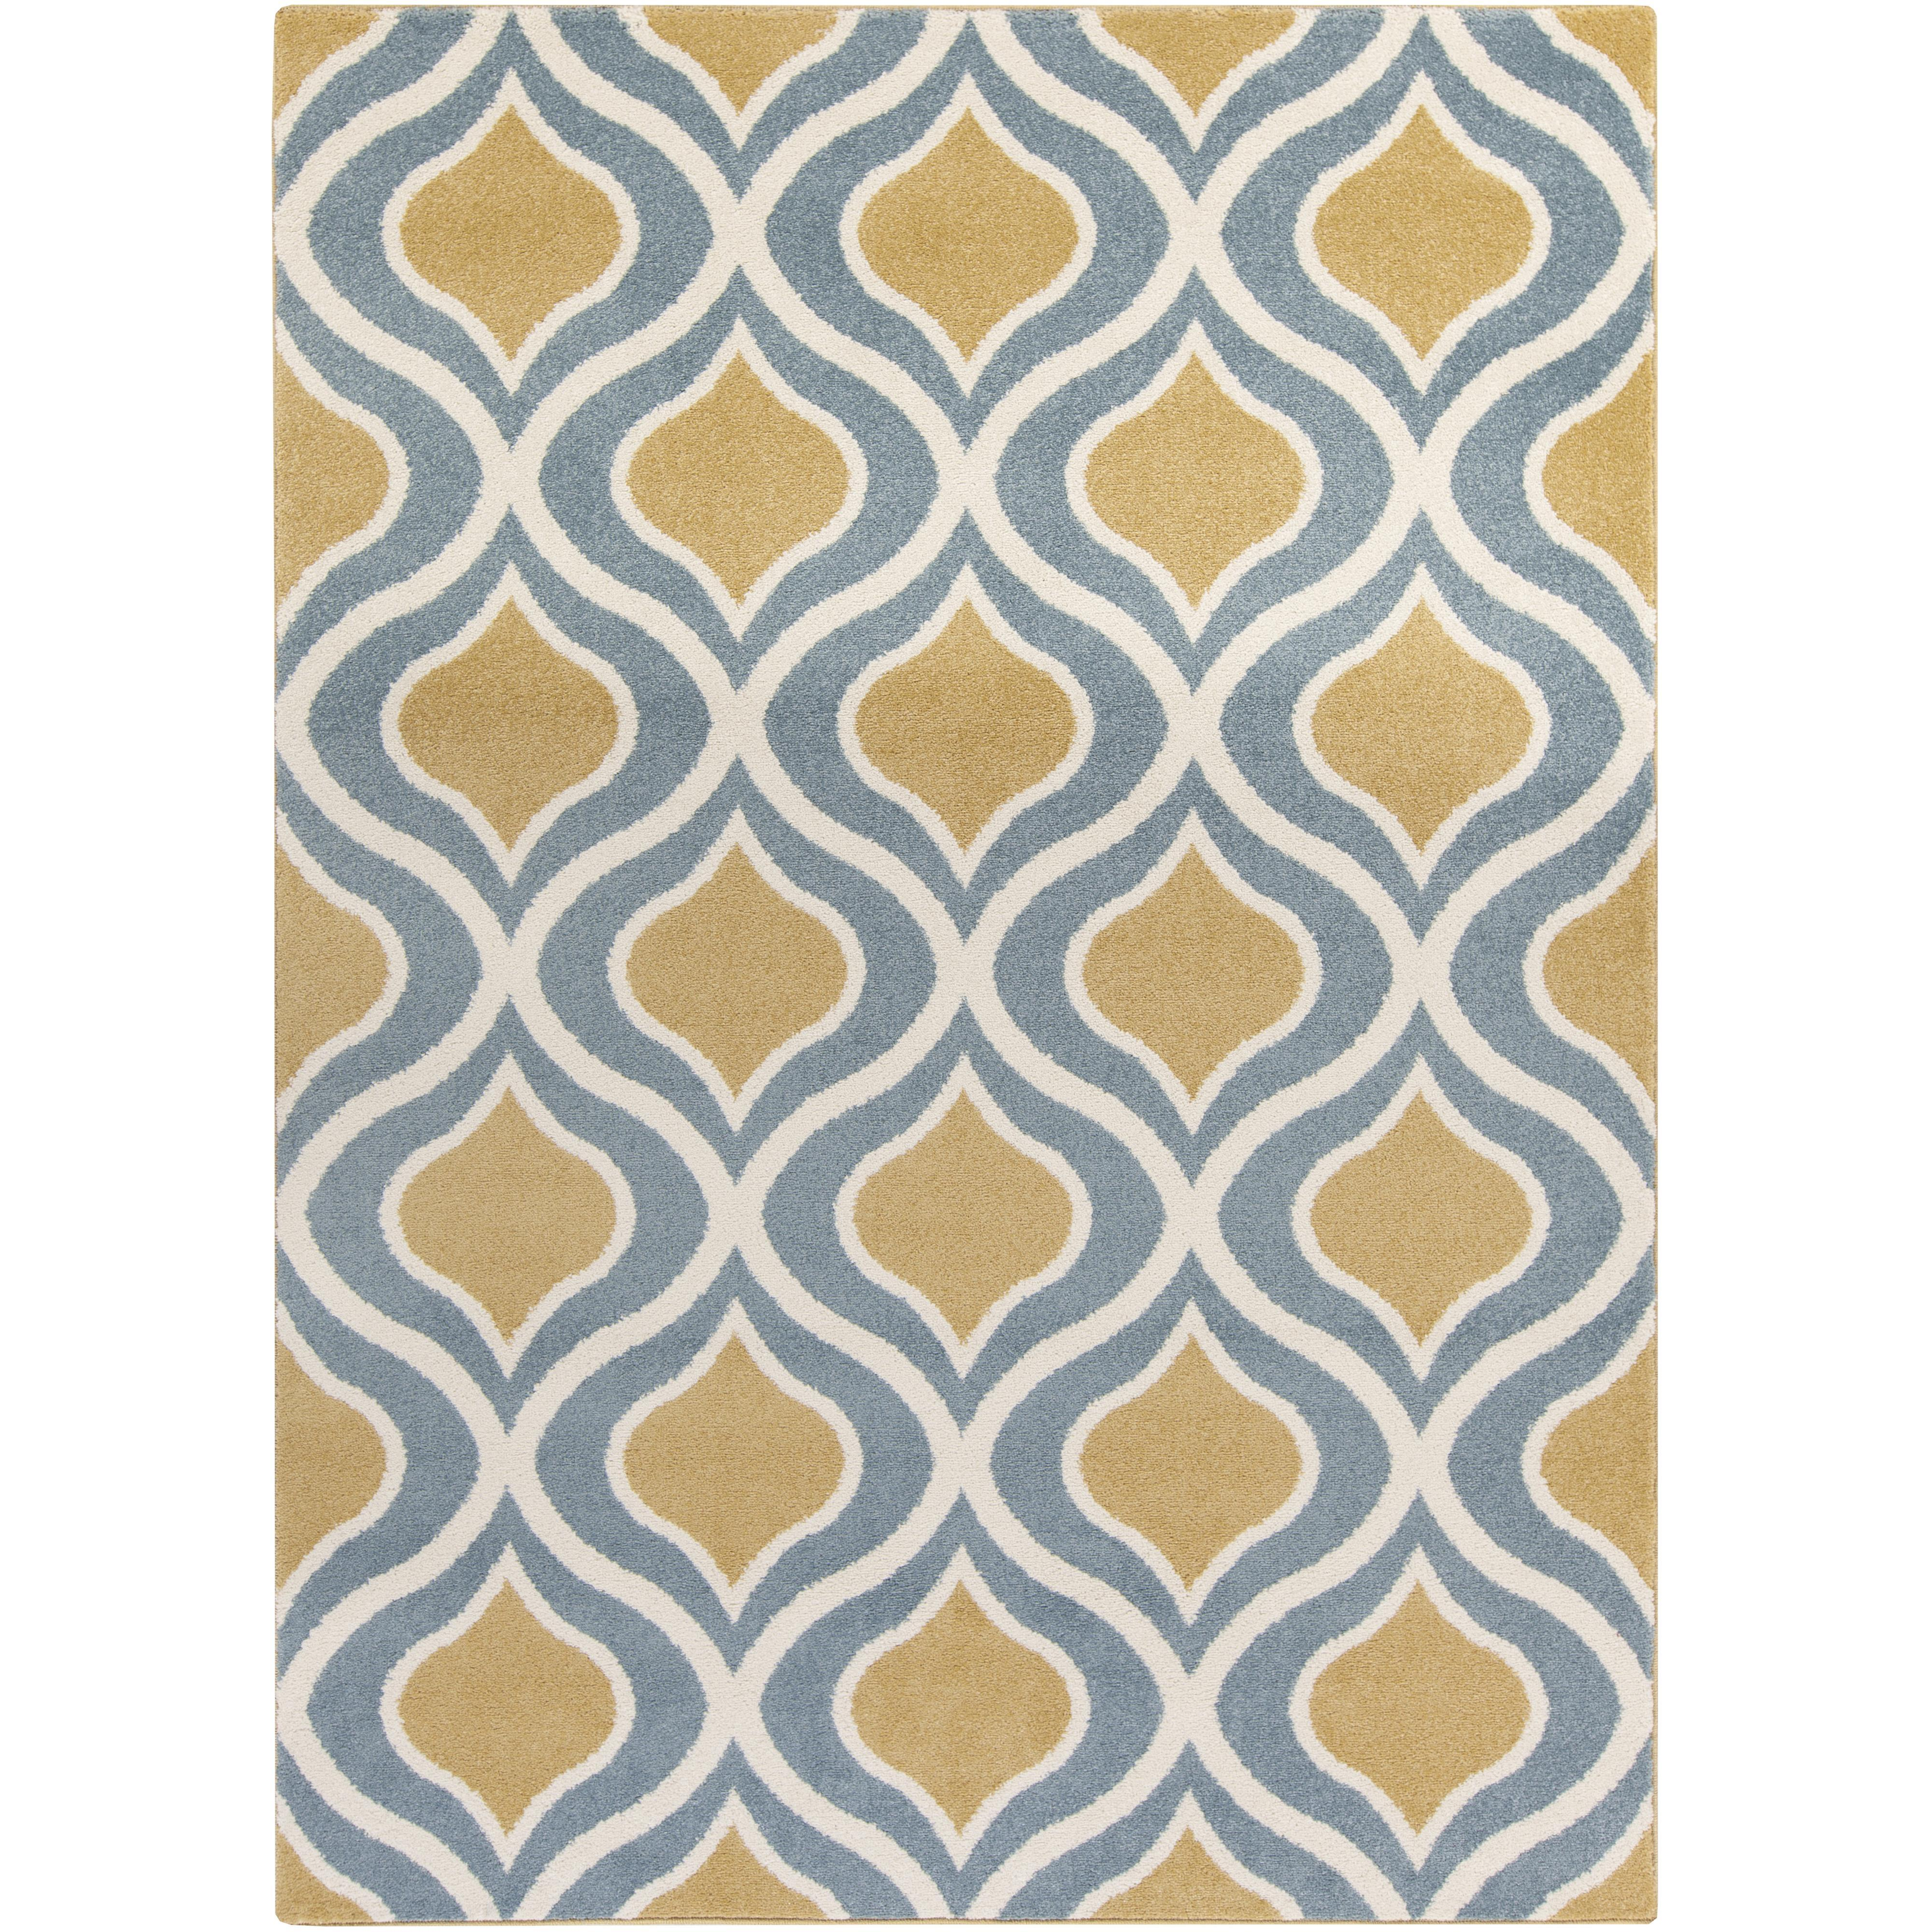 "Surya Rugs Horizon 3'3"" x 5' - Item Number: HRZ1067-335"